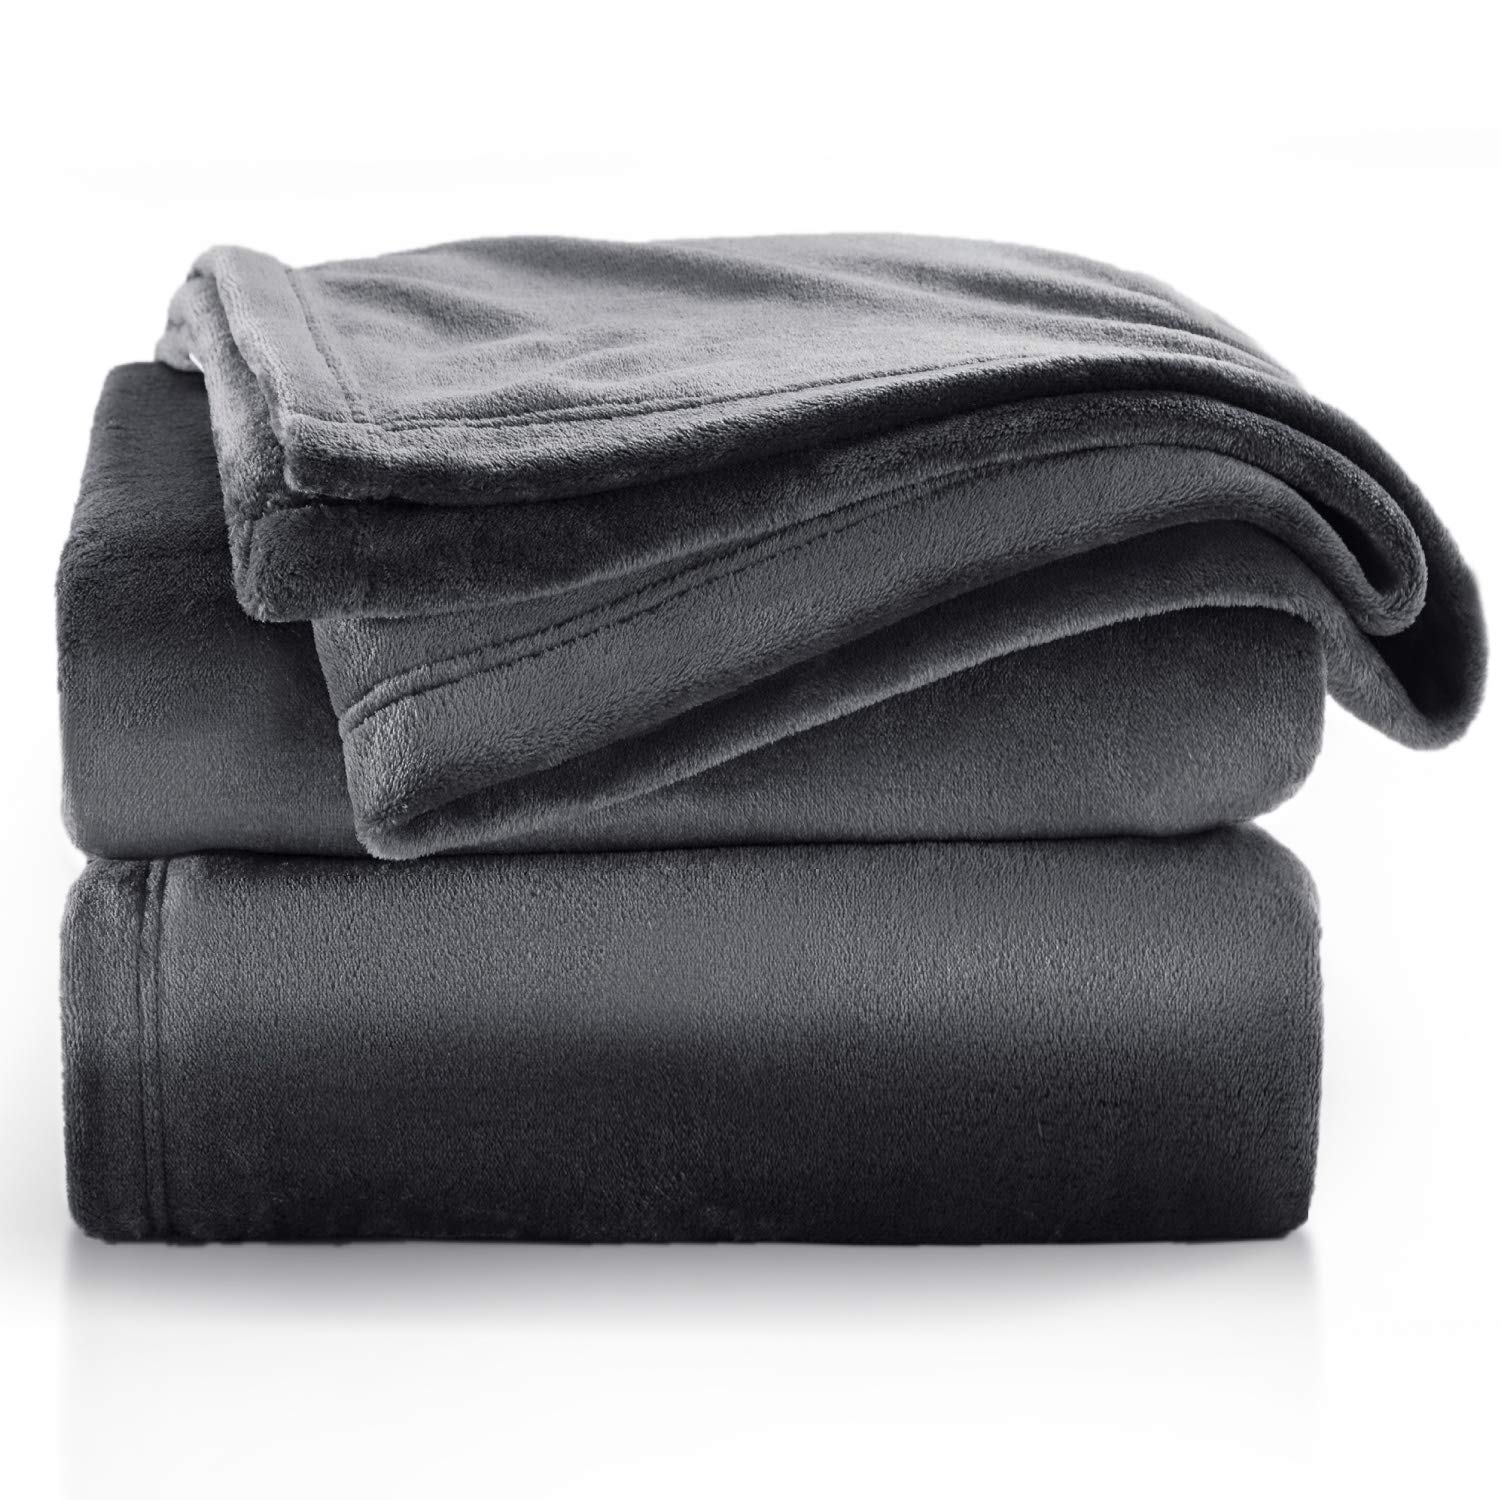 """Bedsure Flannel Fleece Blanket Throw Size (50""""x60""""), Charcoal Grey - Lightweight Blanket for Sofa, Couch, Bed, Camping, Travel - Super Soft Cozy Microfiber Blanket"""